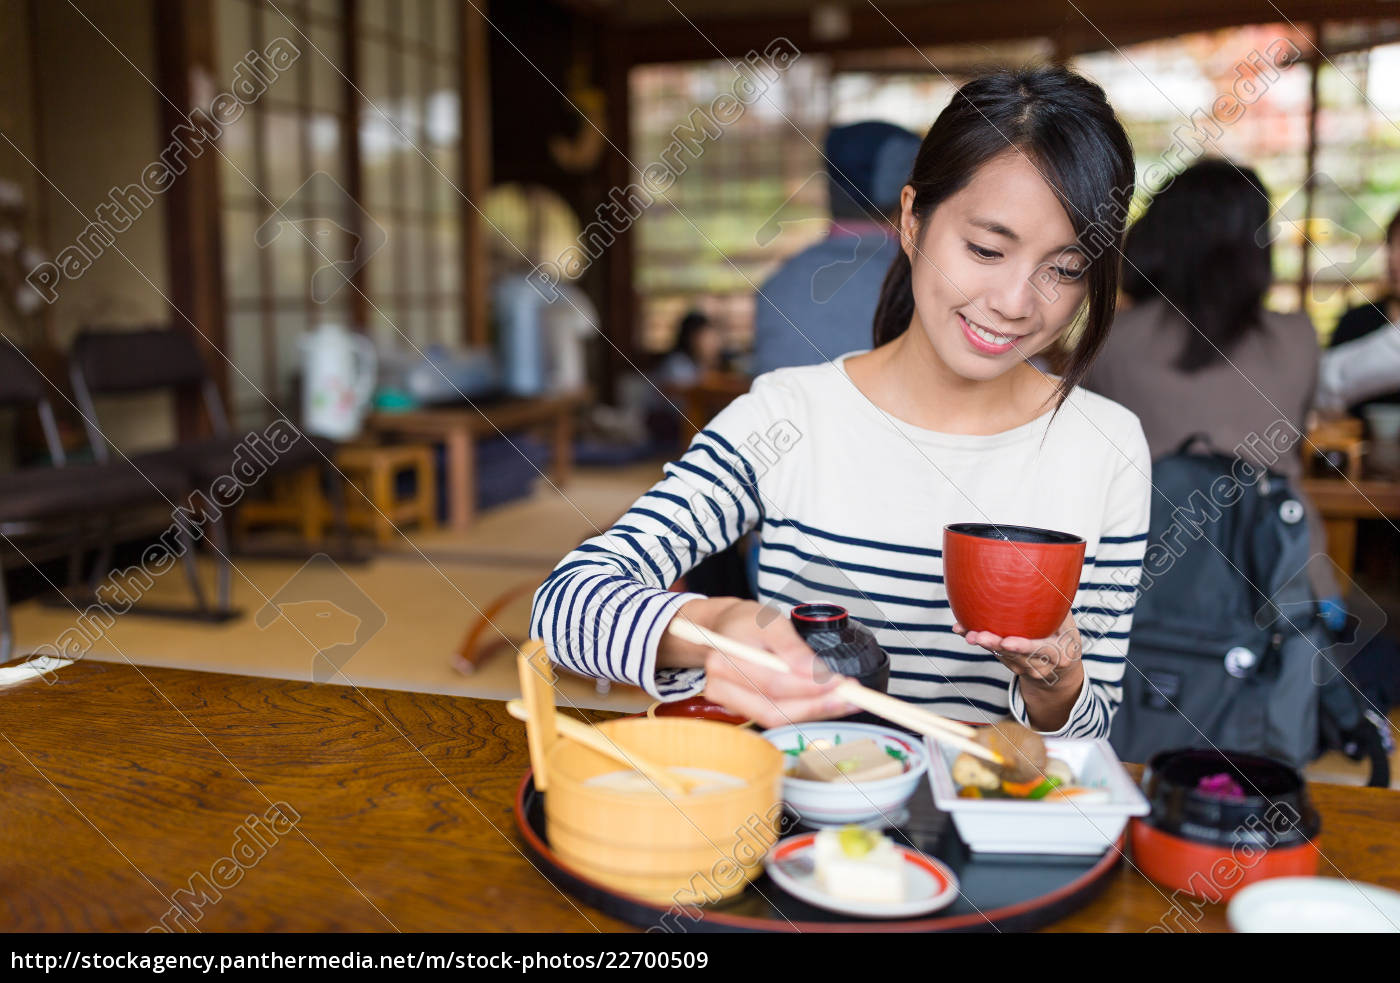 woman, having, japanese, meal, inside, a - 22700509